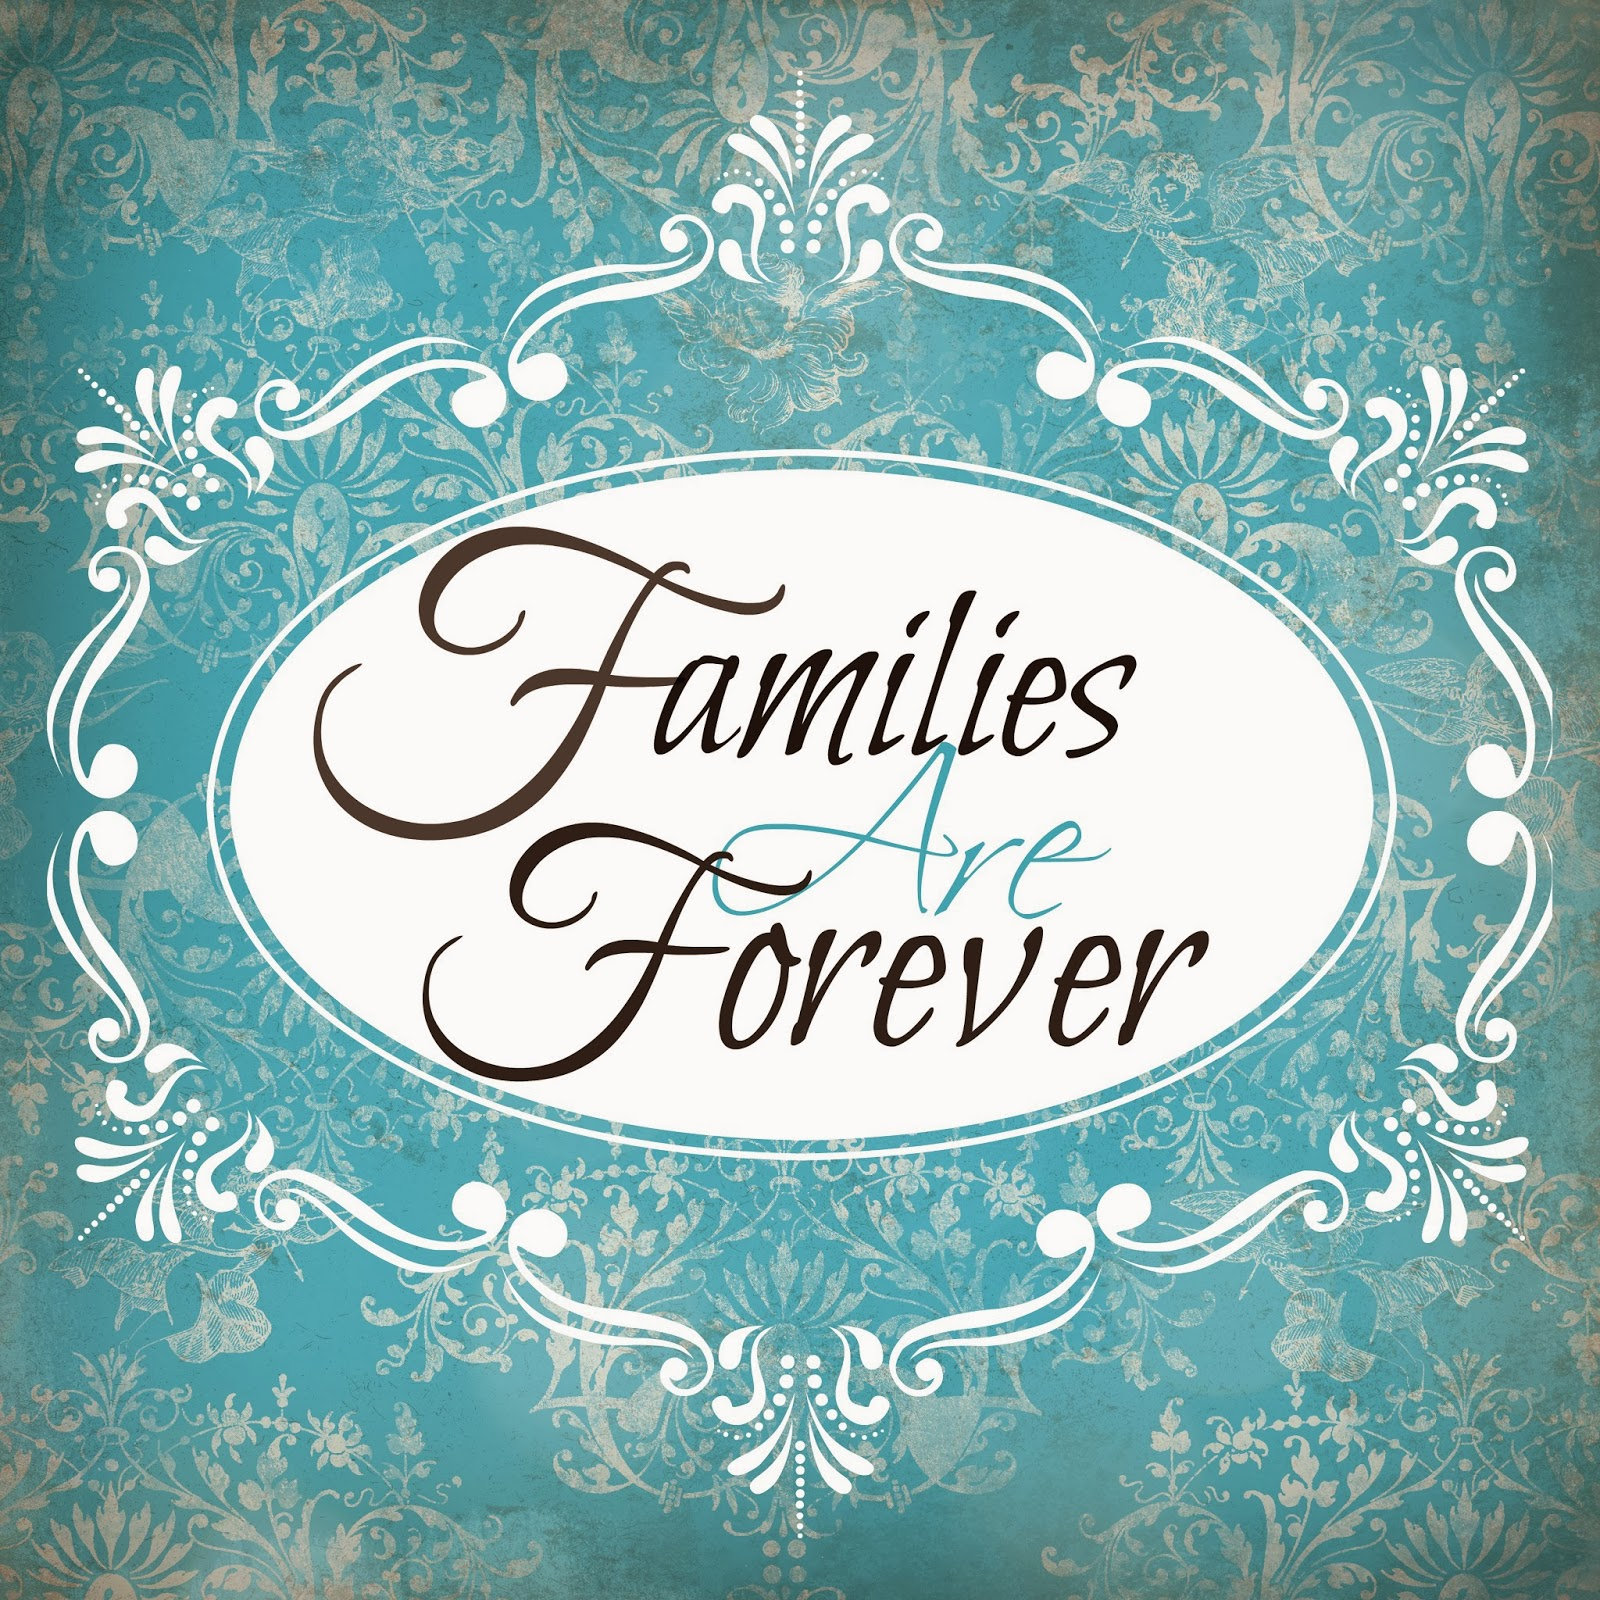 families are forever lds quotes quotesgram. Black Bedroom Furniture Sets. Home Design Ideas